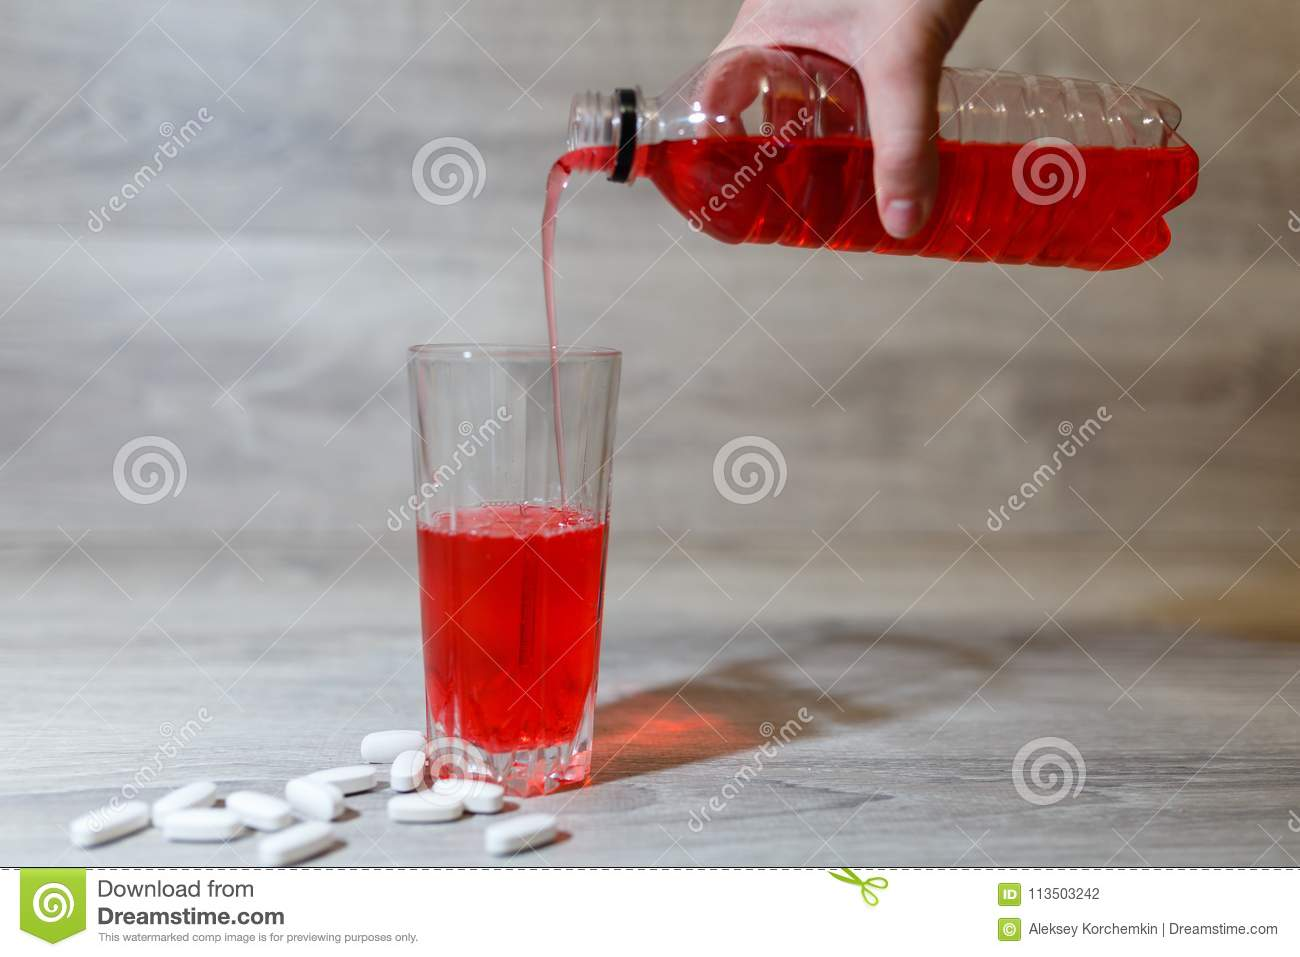 A Woman's Hand Pours A Red Sports Drink Or Lemonade Into A Glass Cup